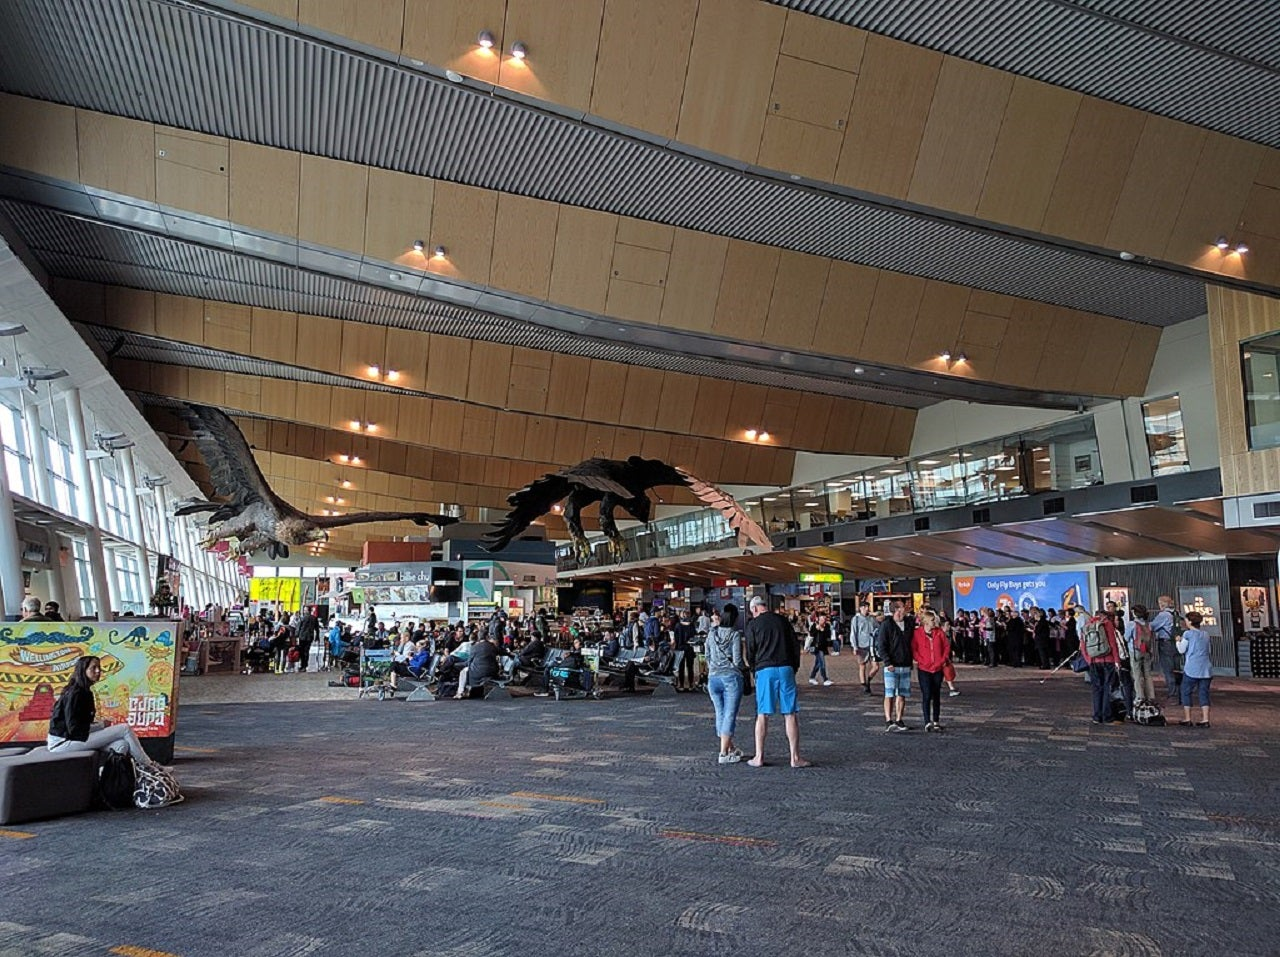 Wellington Airport launches sunflower lanyard initiative for passengers with hidden disabilities